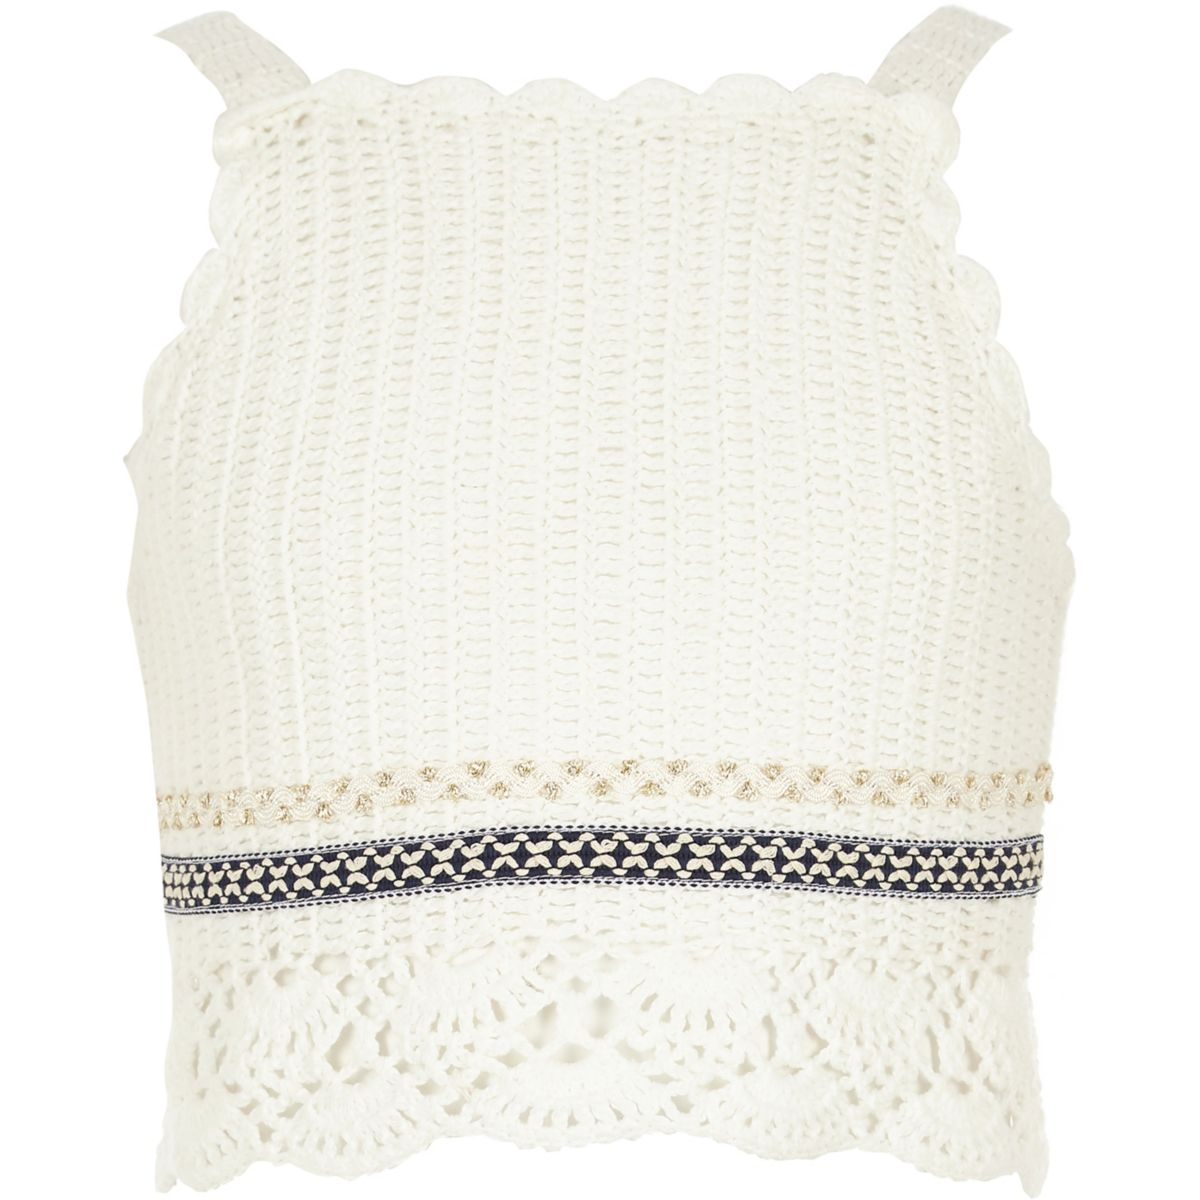 Girls white crochet crop top